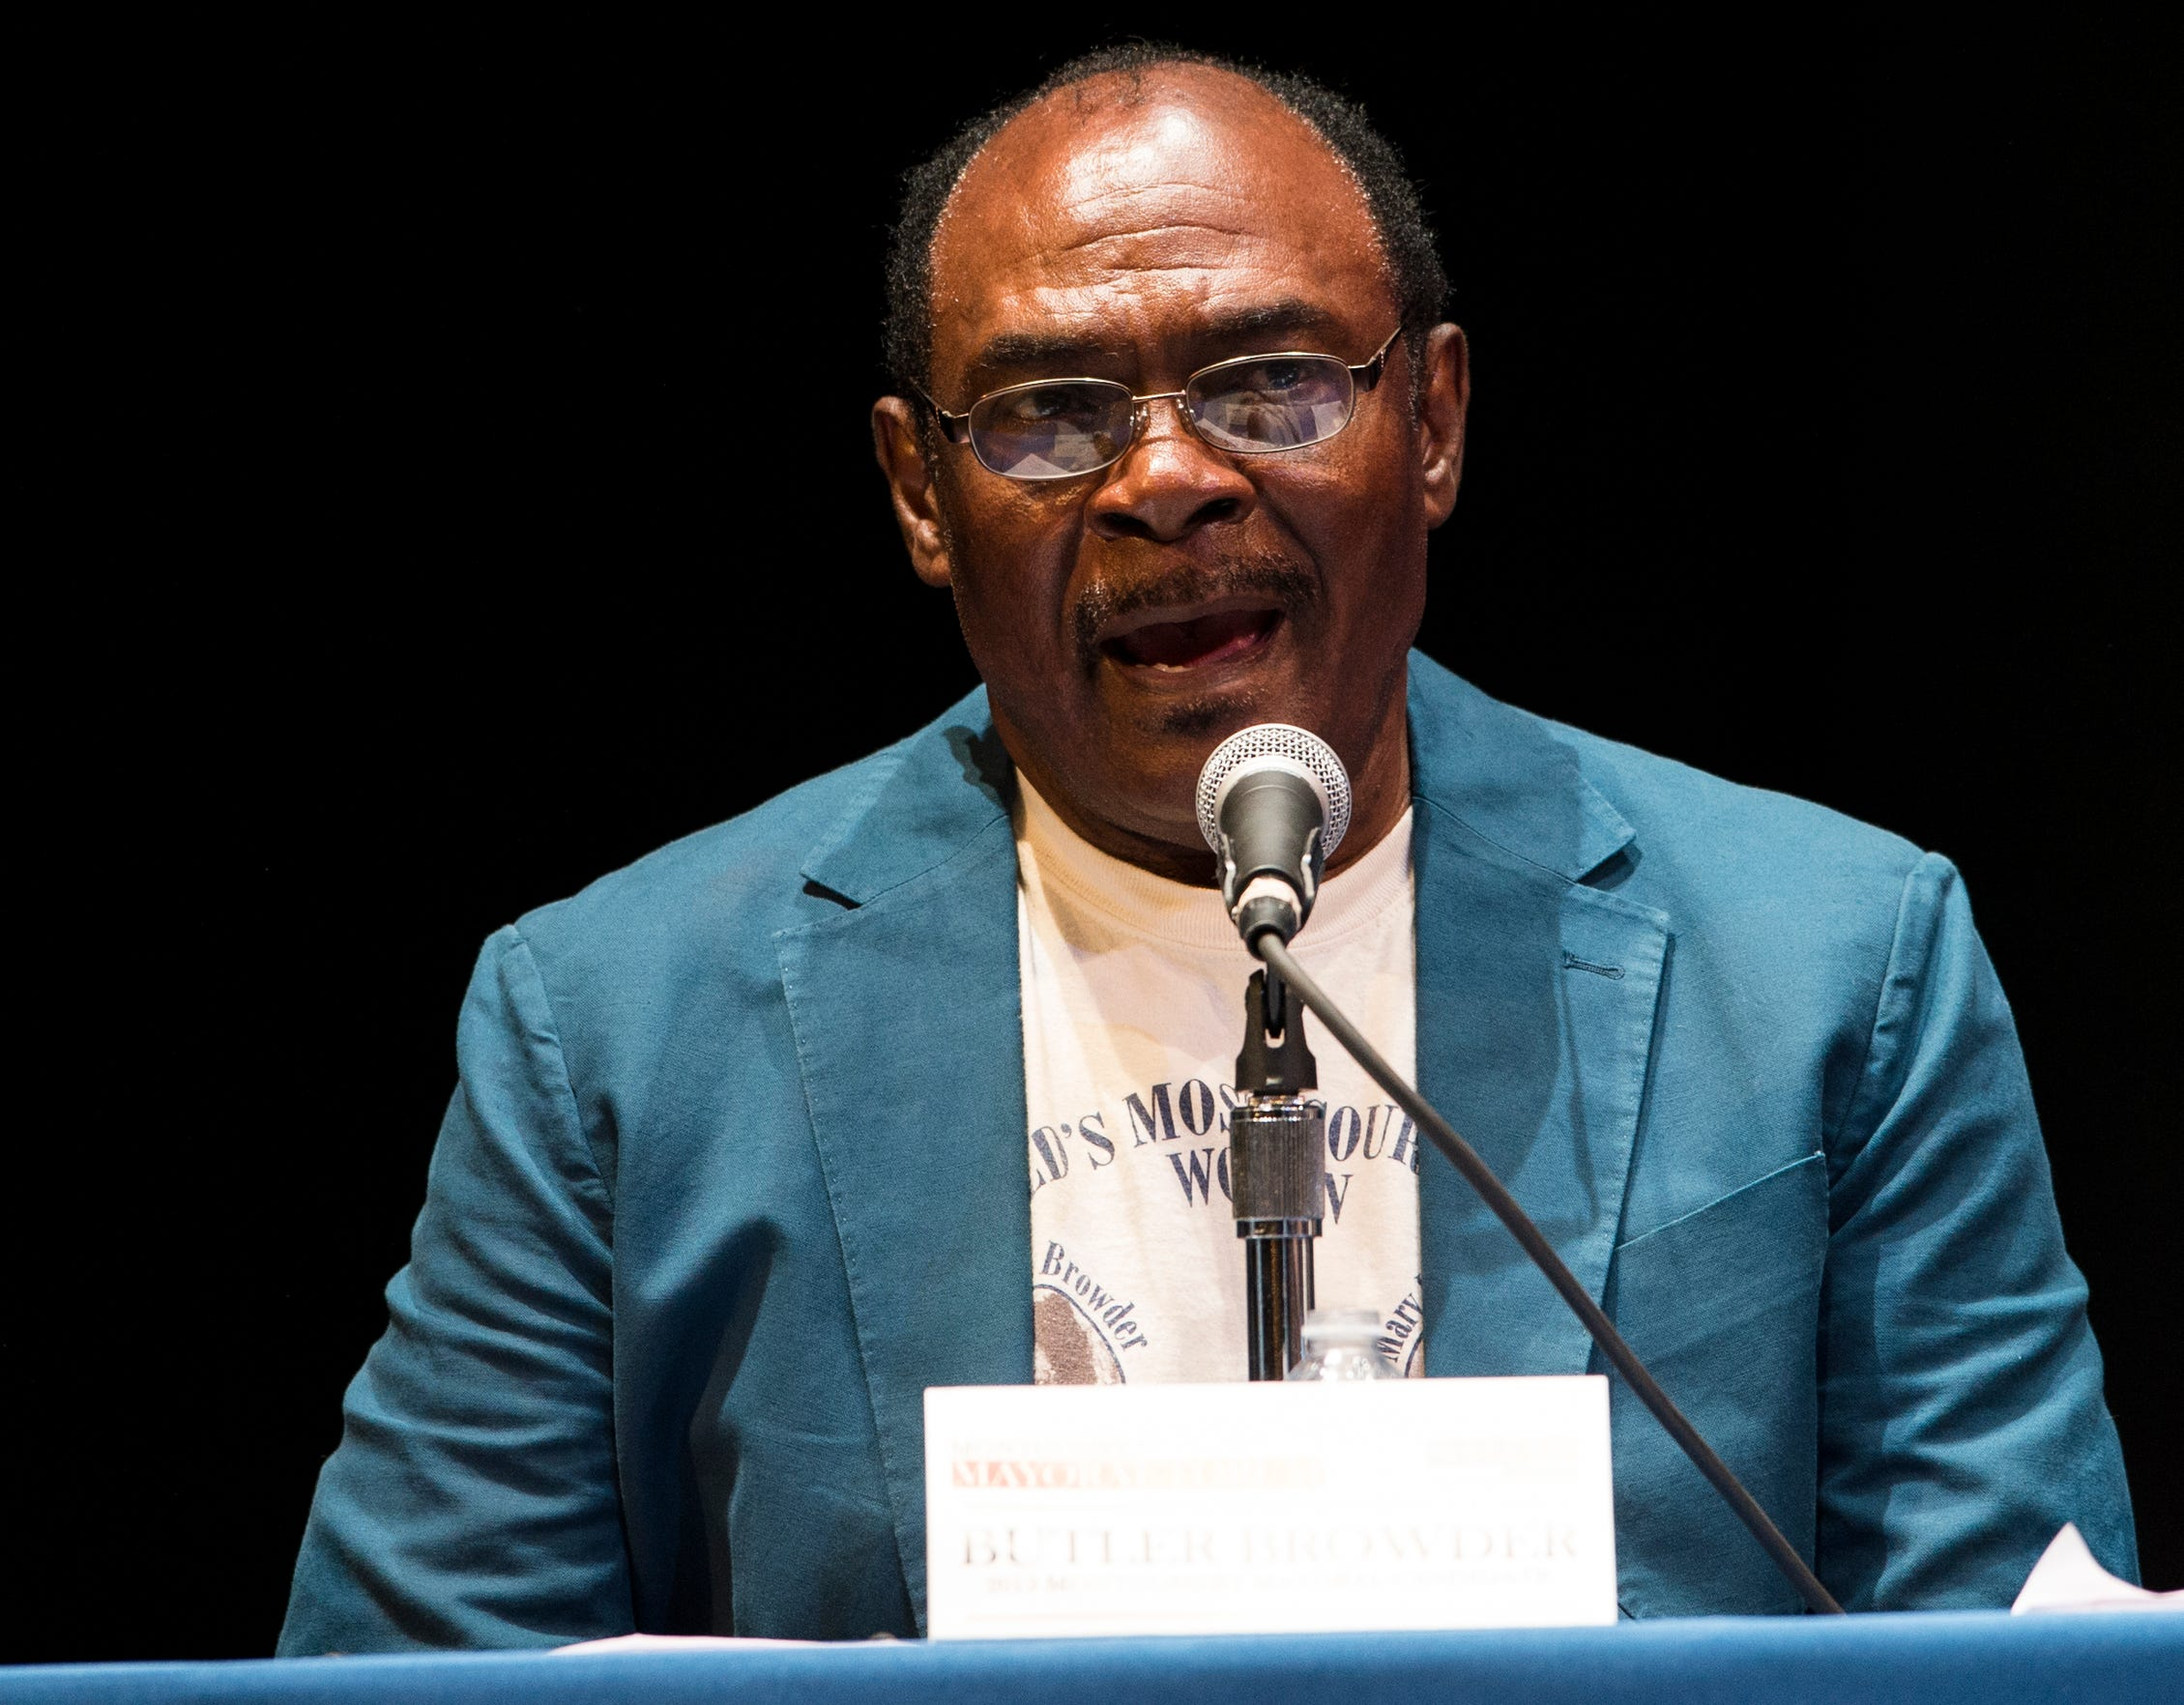 Candidate Butler Browder speaks during a Mayoral candidate forum at Davis Theatre in Montgomery, Ala., on Wednesday, Aug. 14, 2019.